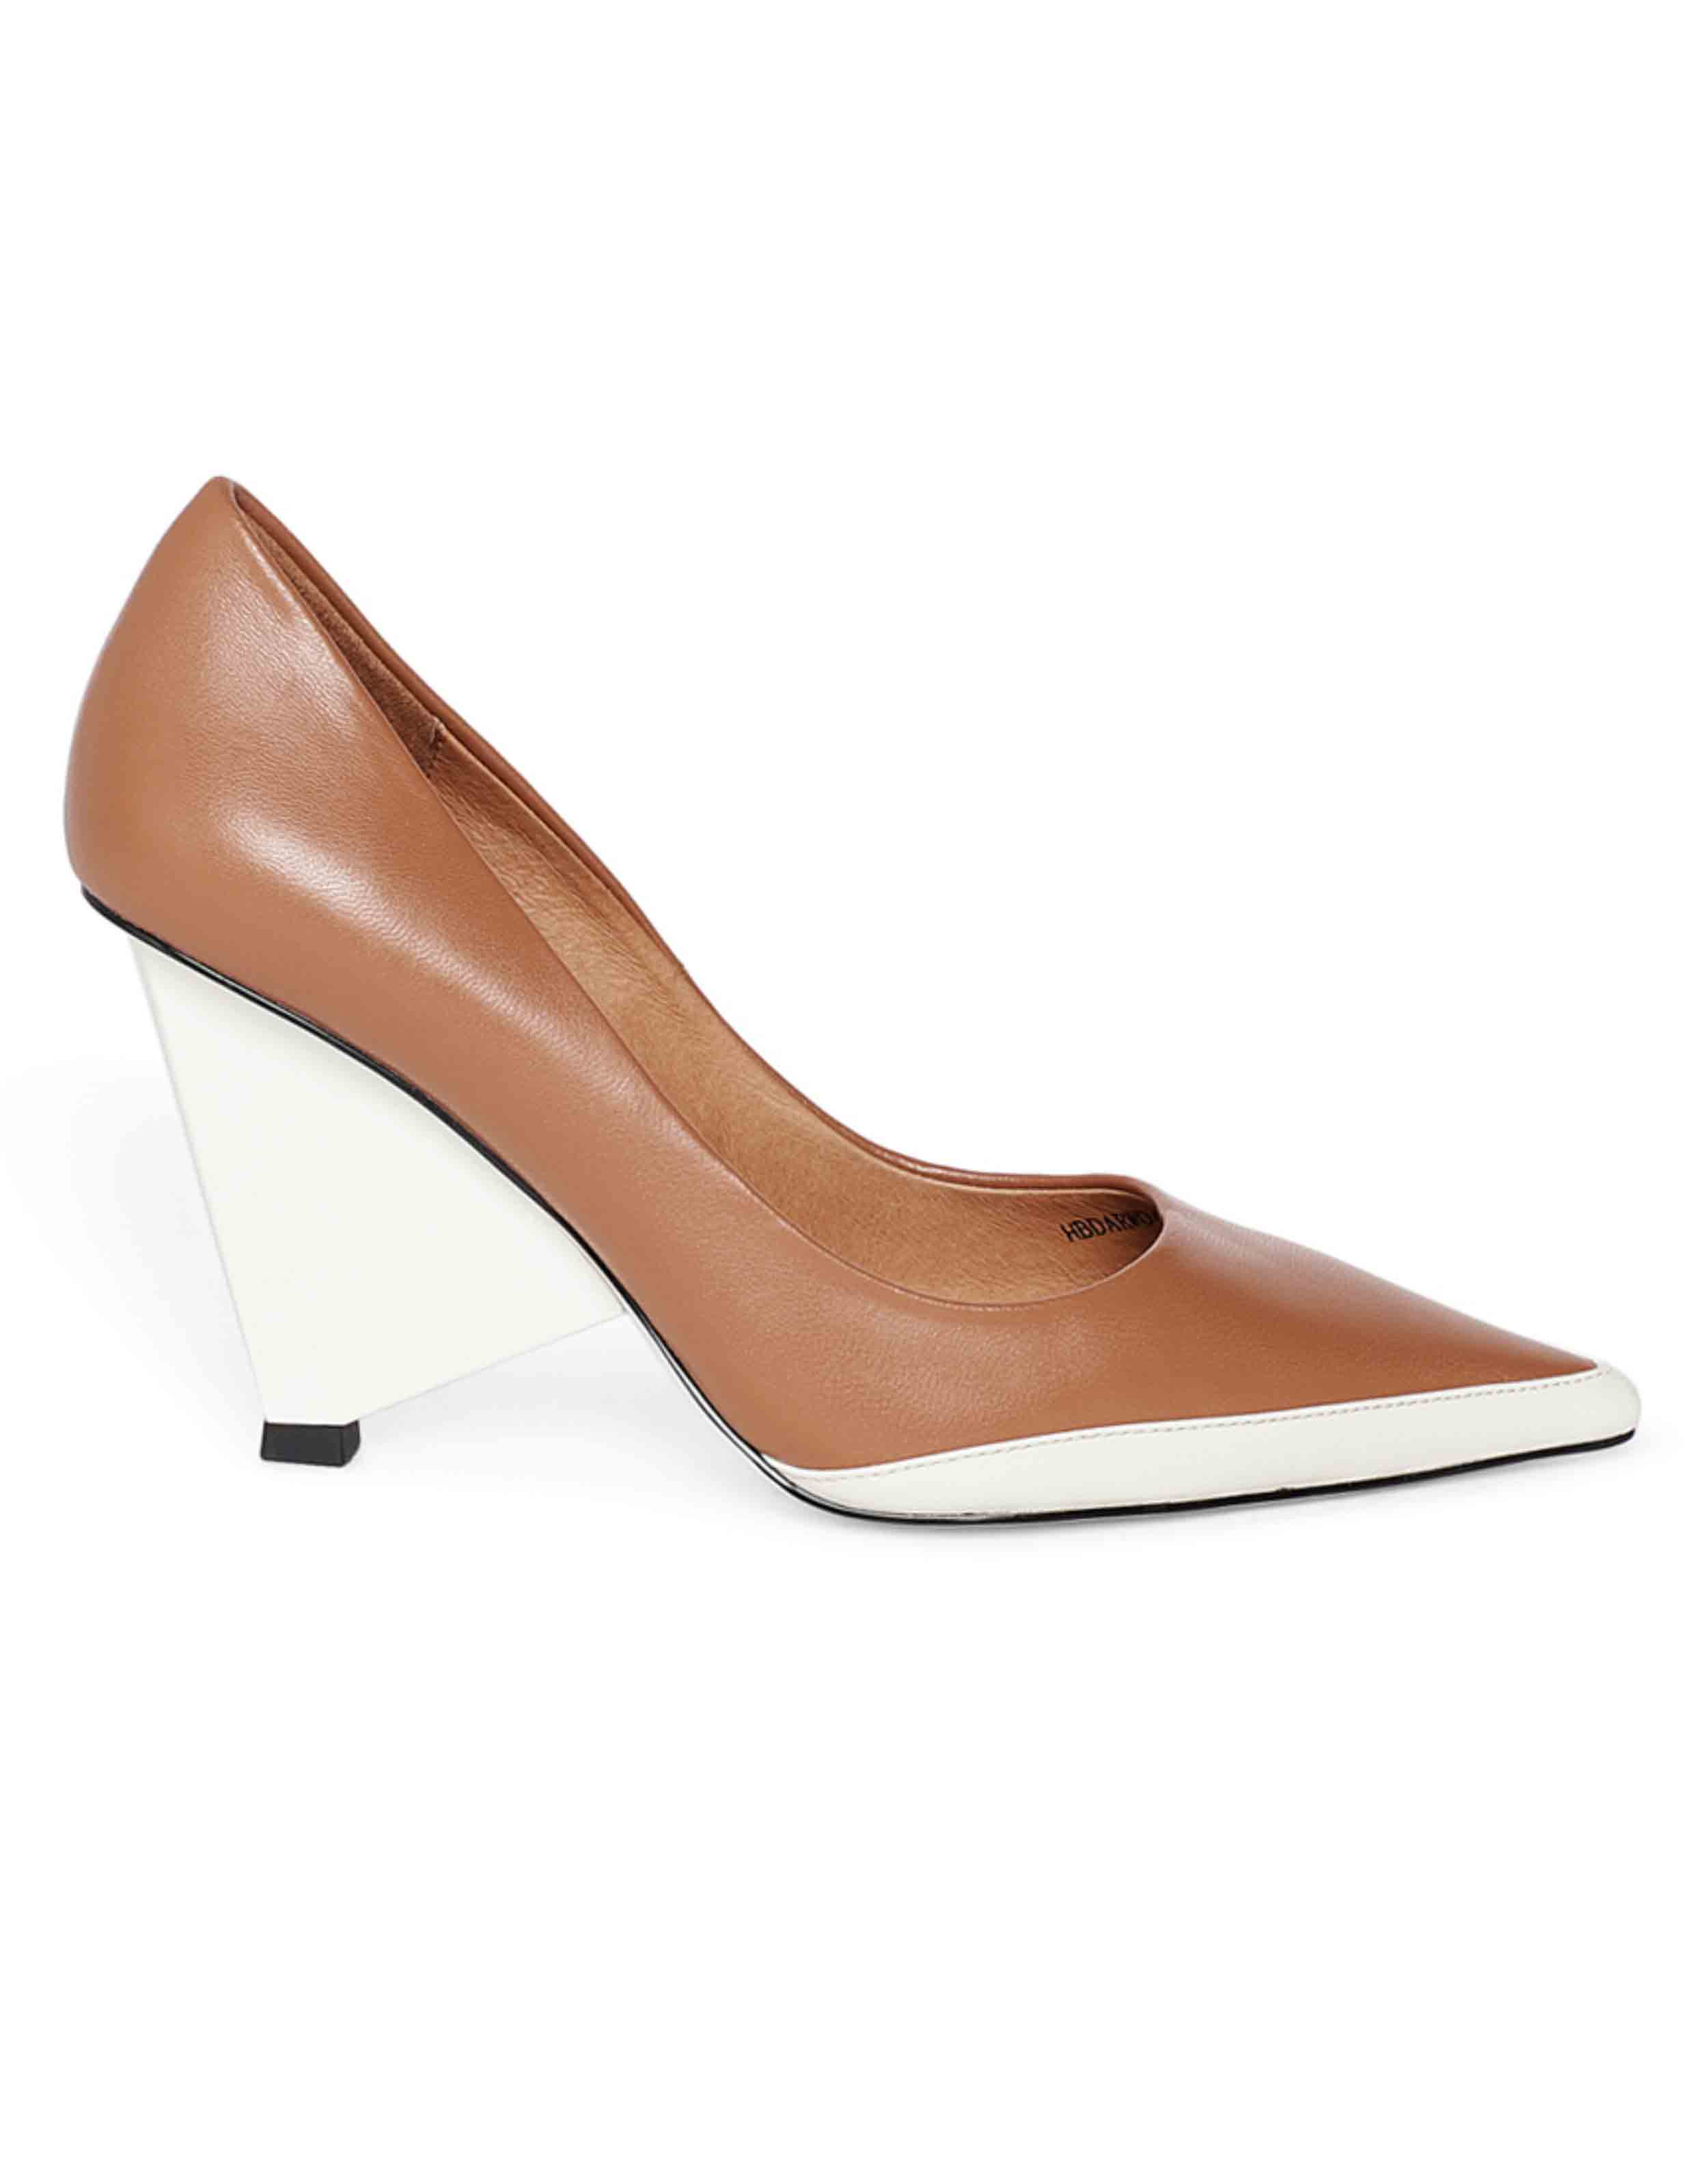 Triangular Pumps1